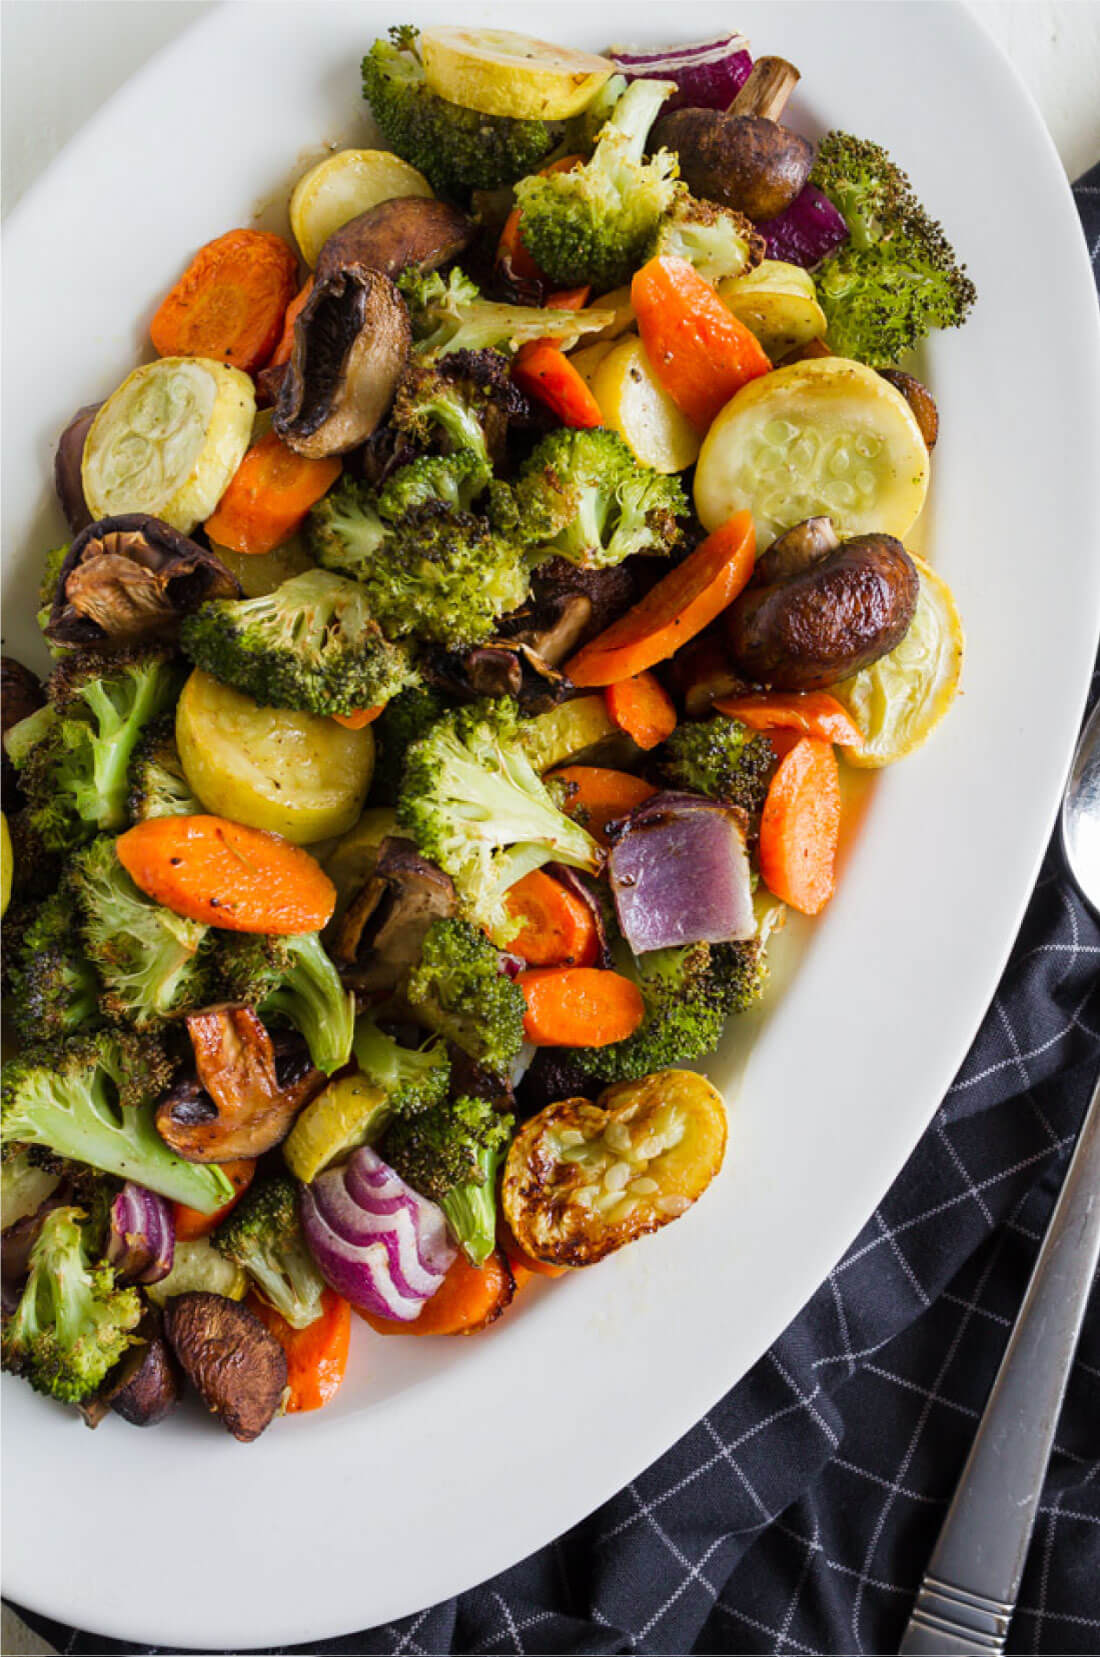 Easy Roasted Vegetables - use this way to make a healthy side dish with every meal.